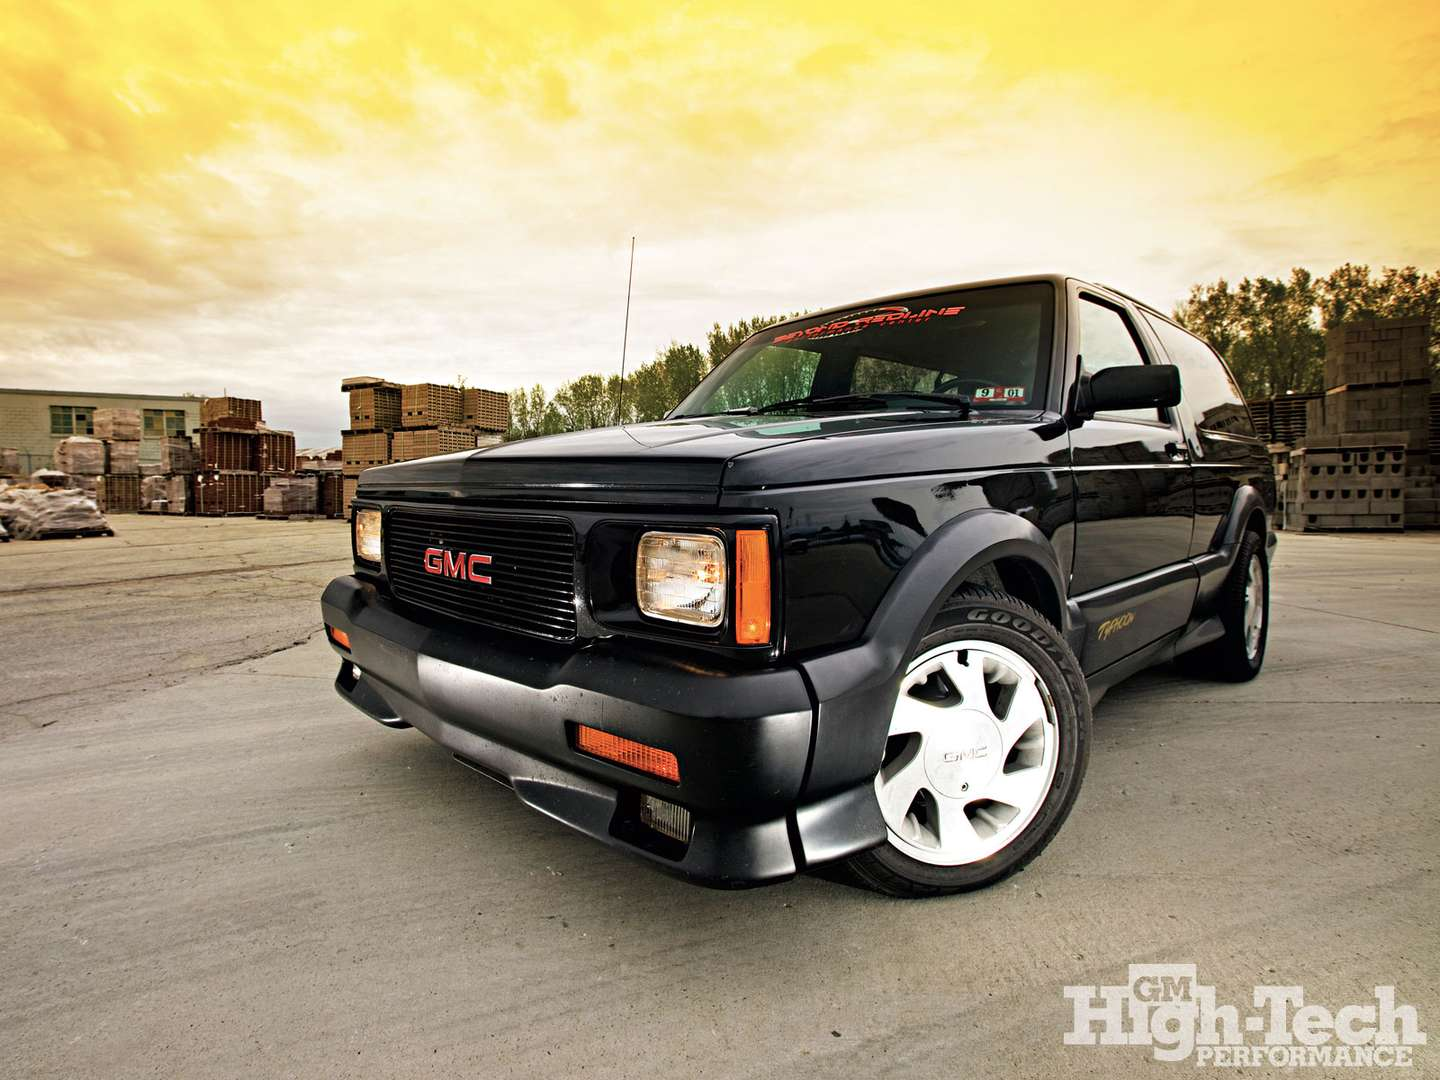 GMC Typhoon #9068876